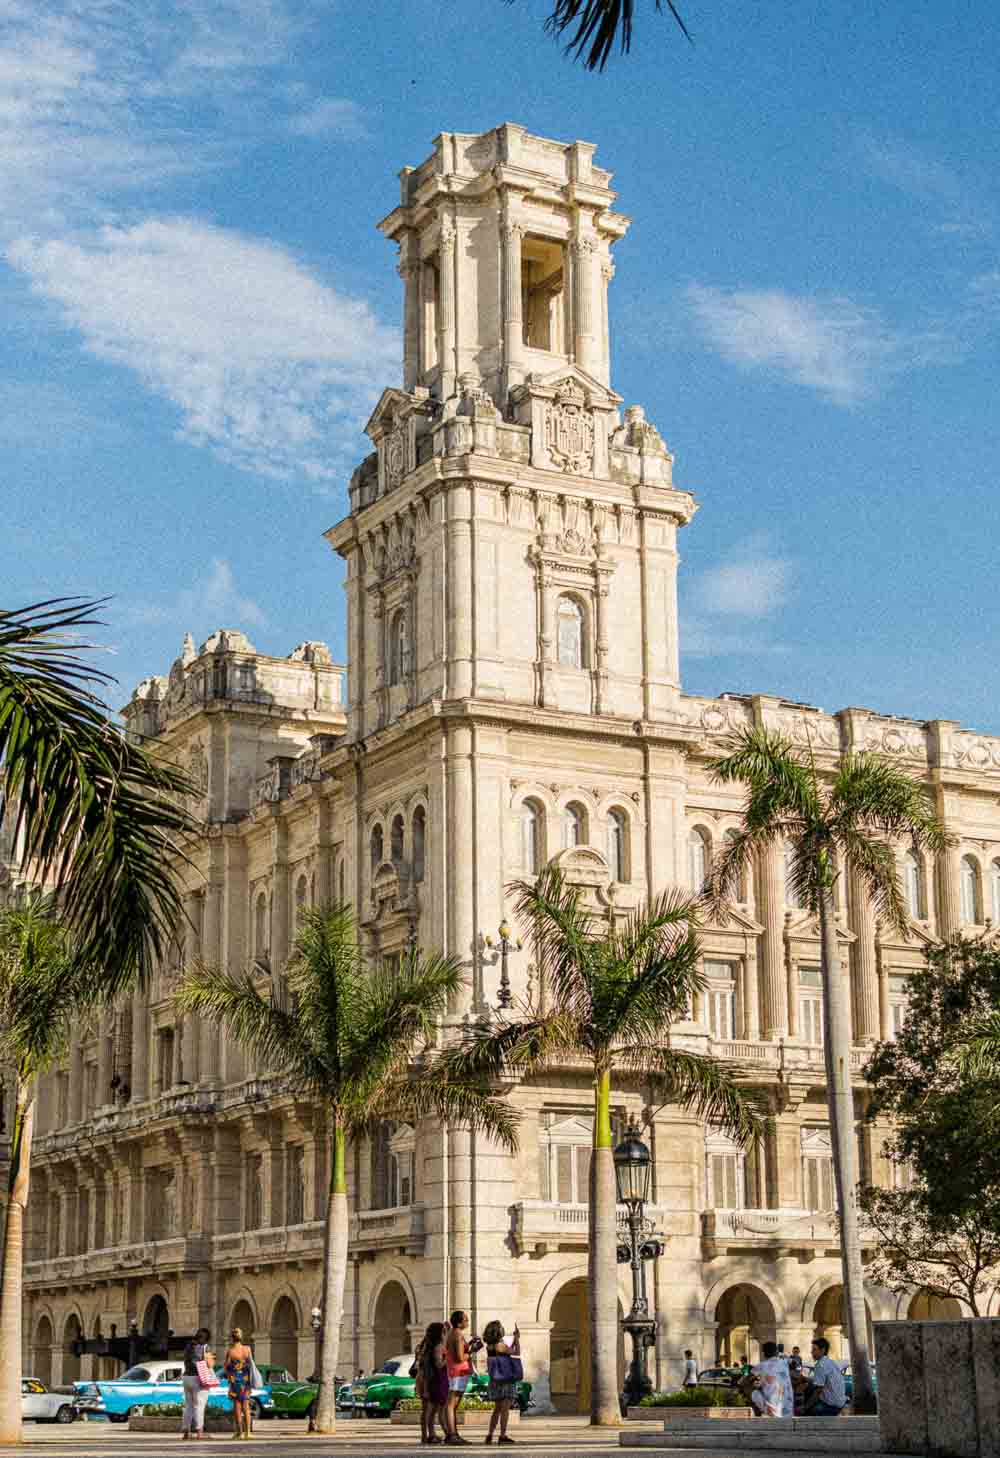 Historical Architecture in Havana Cuba